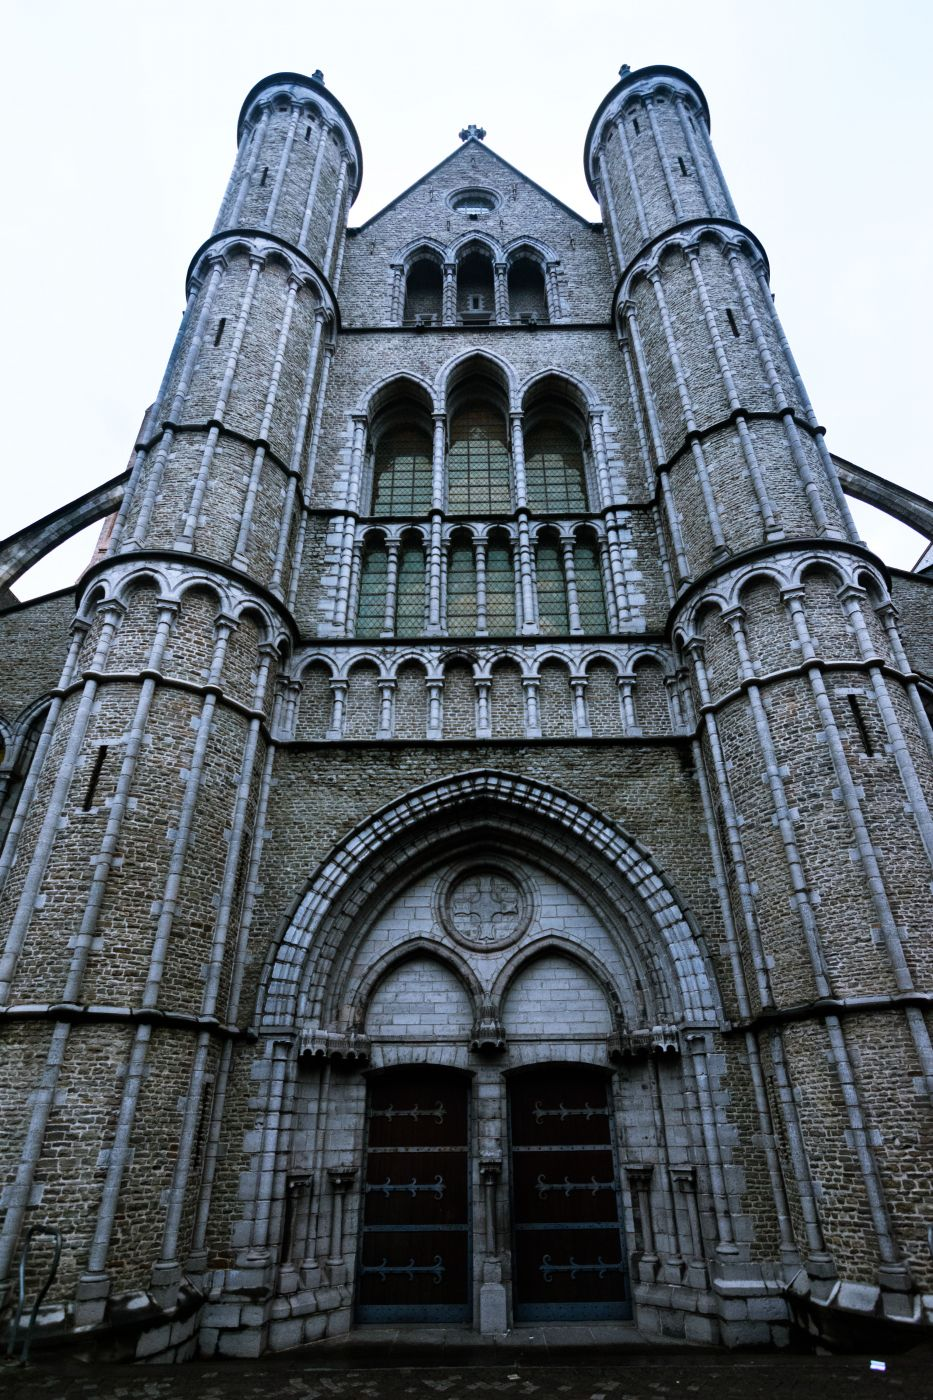 Church of Our Lady Bruges, Belgium